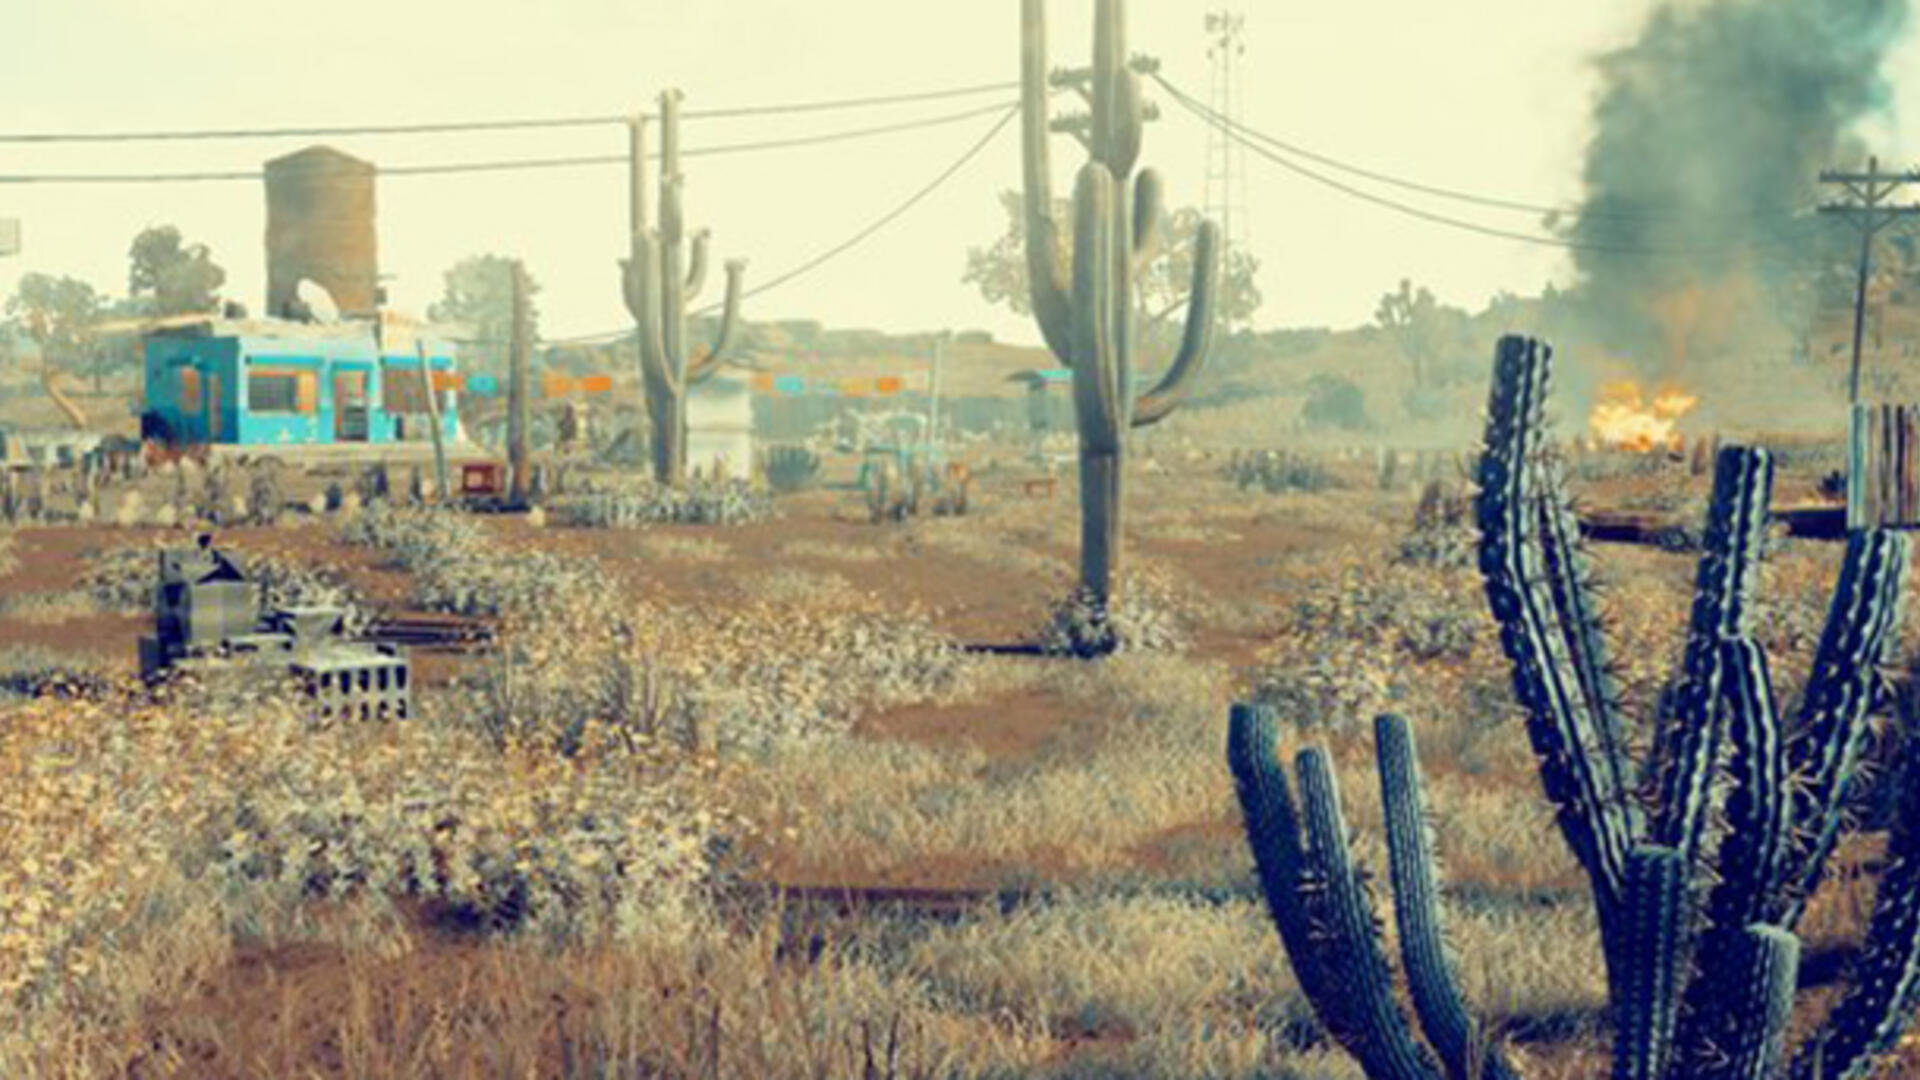 PlayerUnknown's Battlegrounds Teases New Desert Map